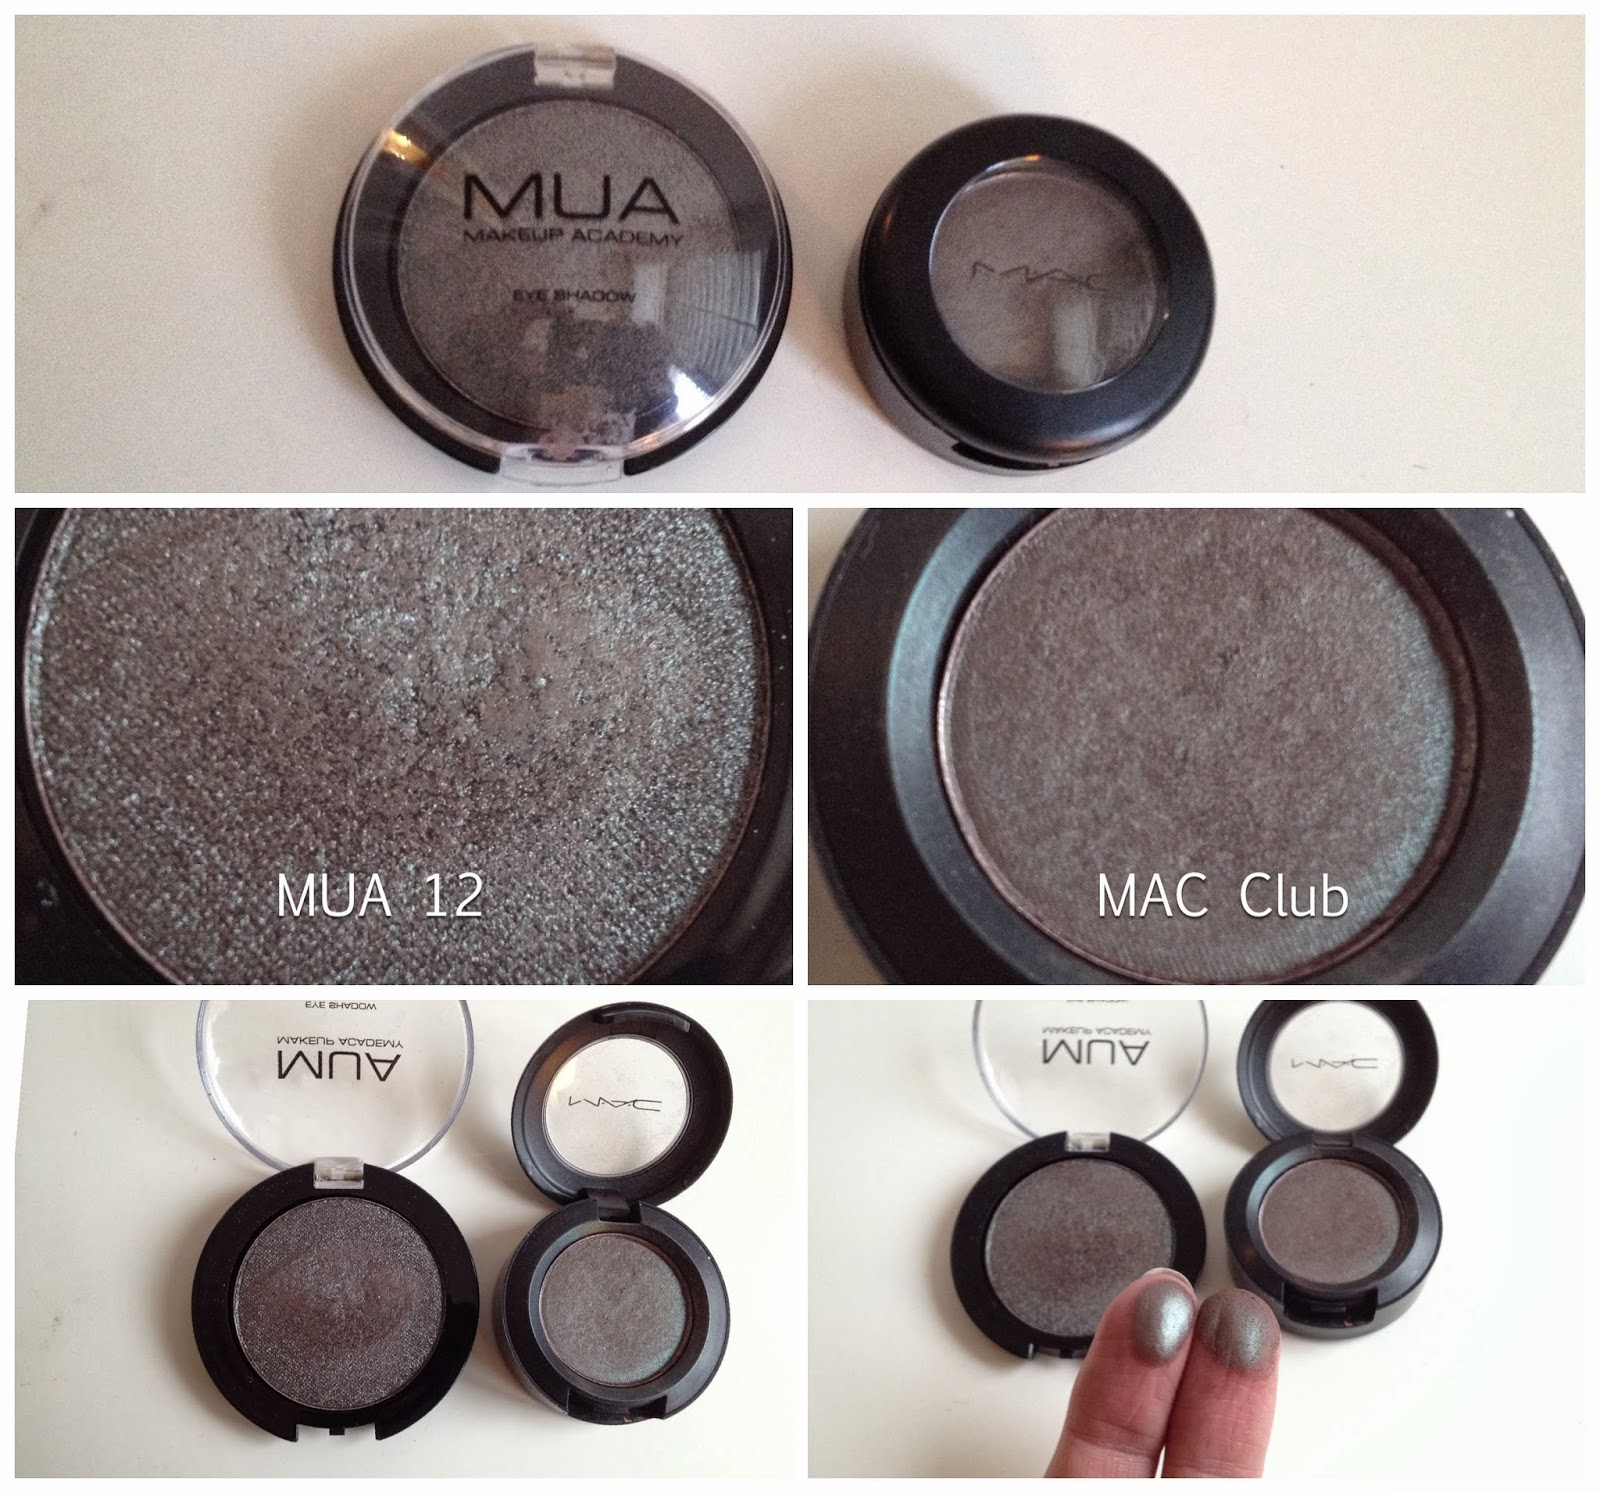 MUA Eyeshadow 12 is a dupe for MAC Club